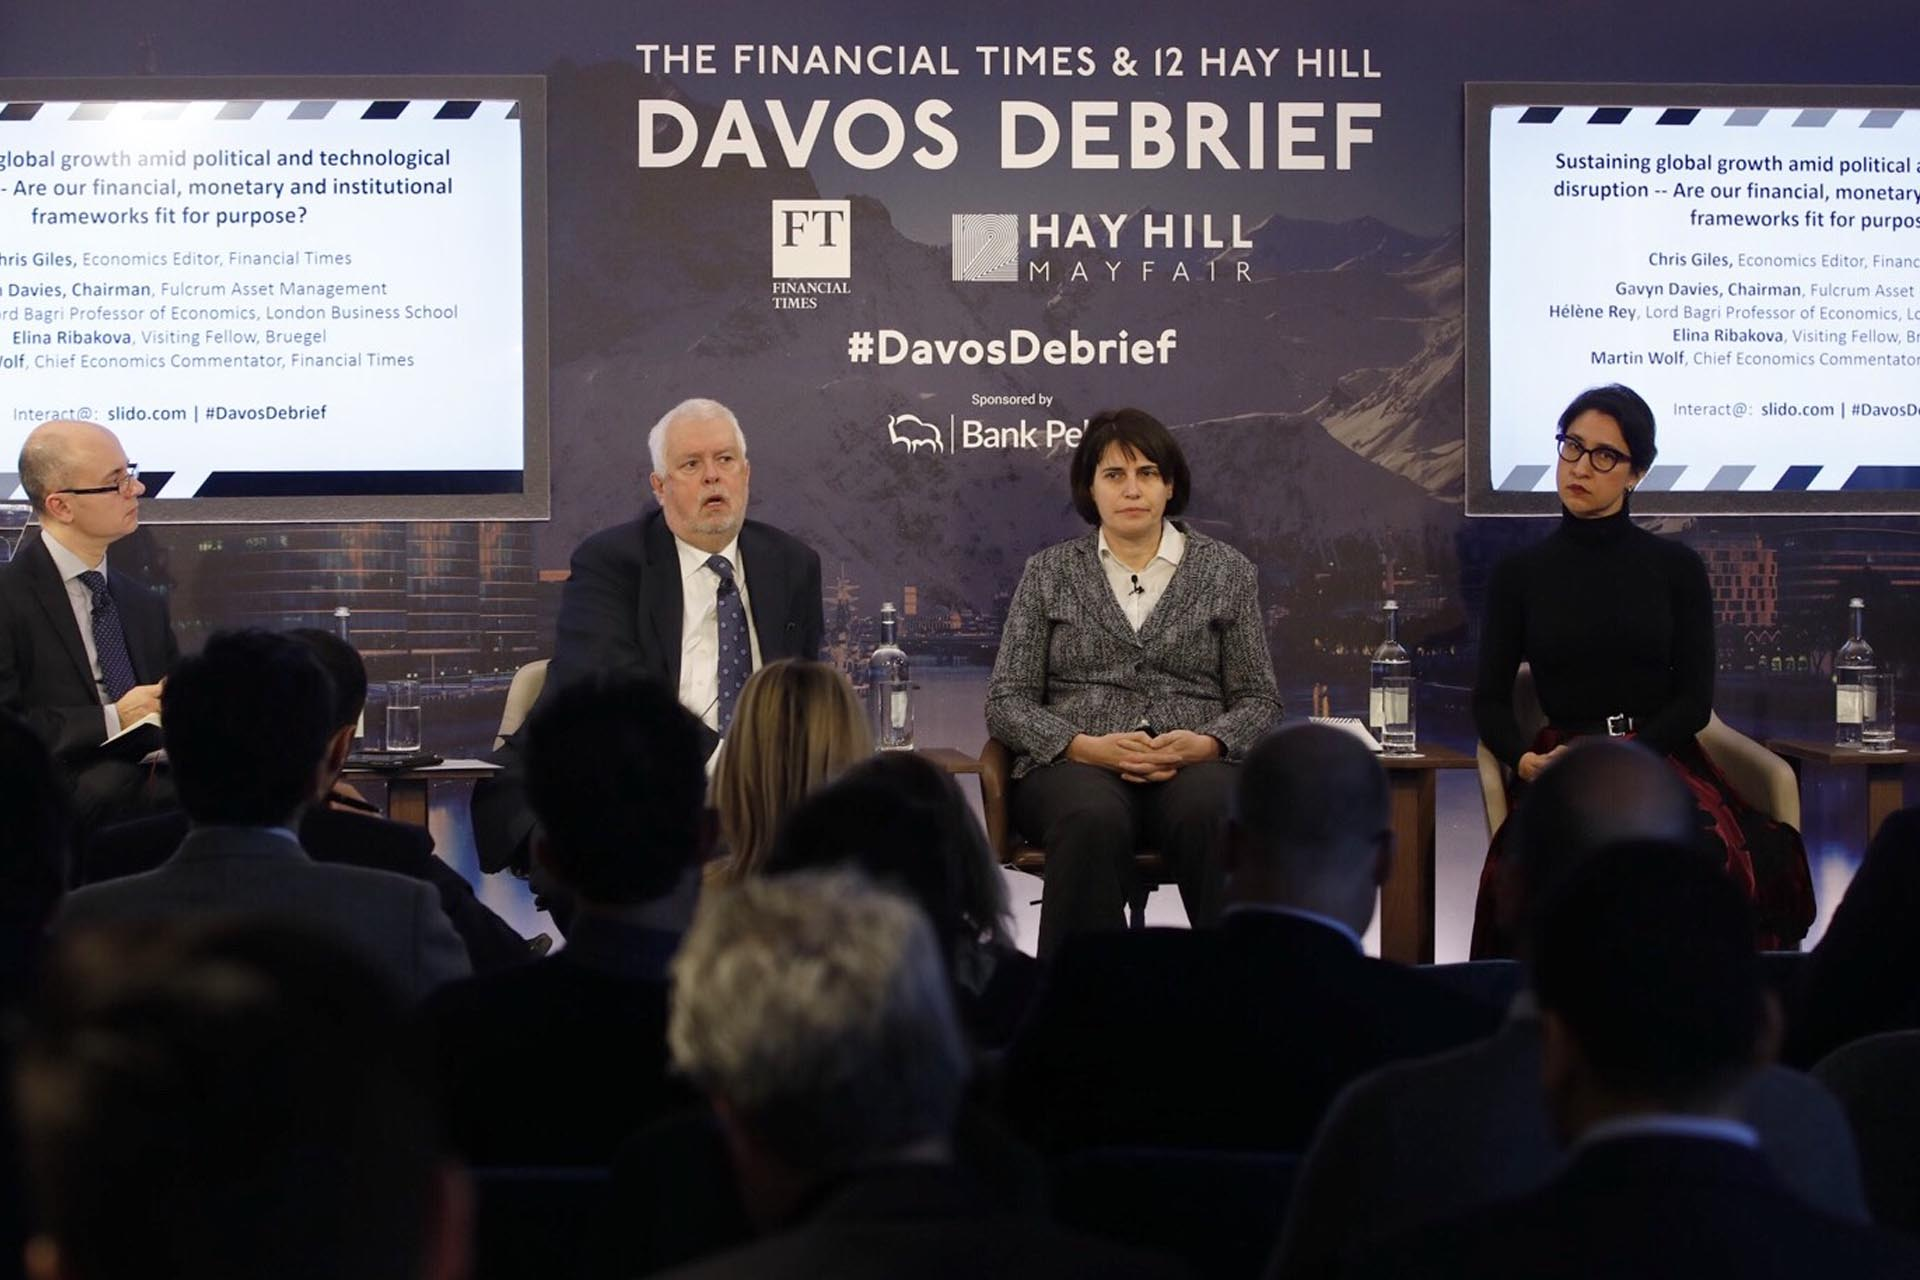 The 12 Hay Hill I Financial Times 2019 Davos Debrief – Session One